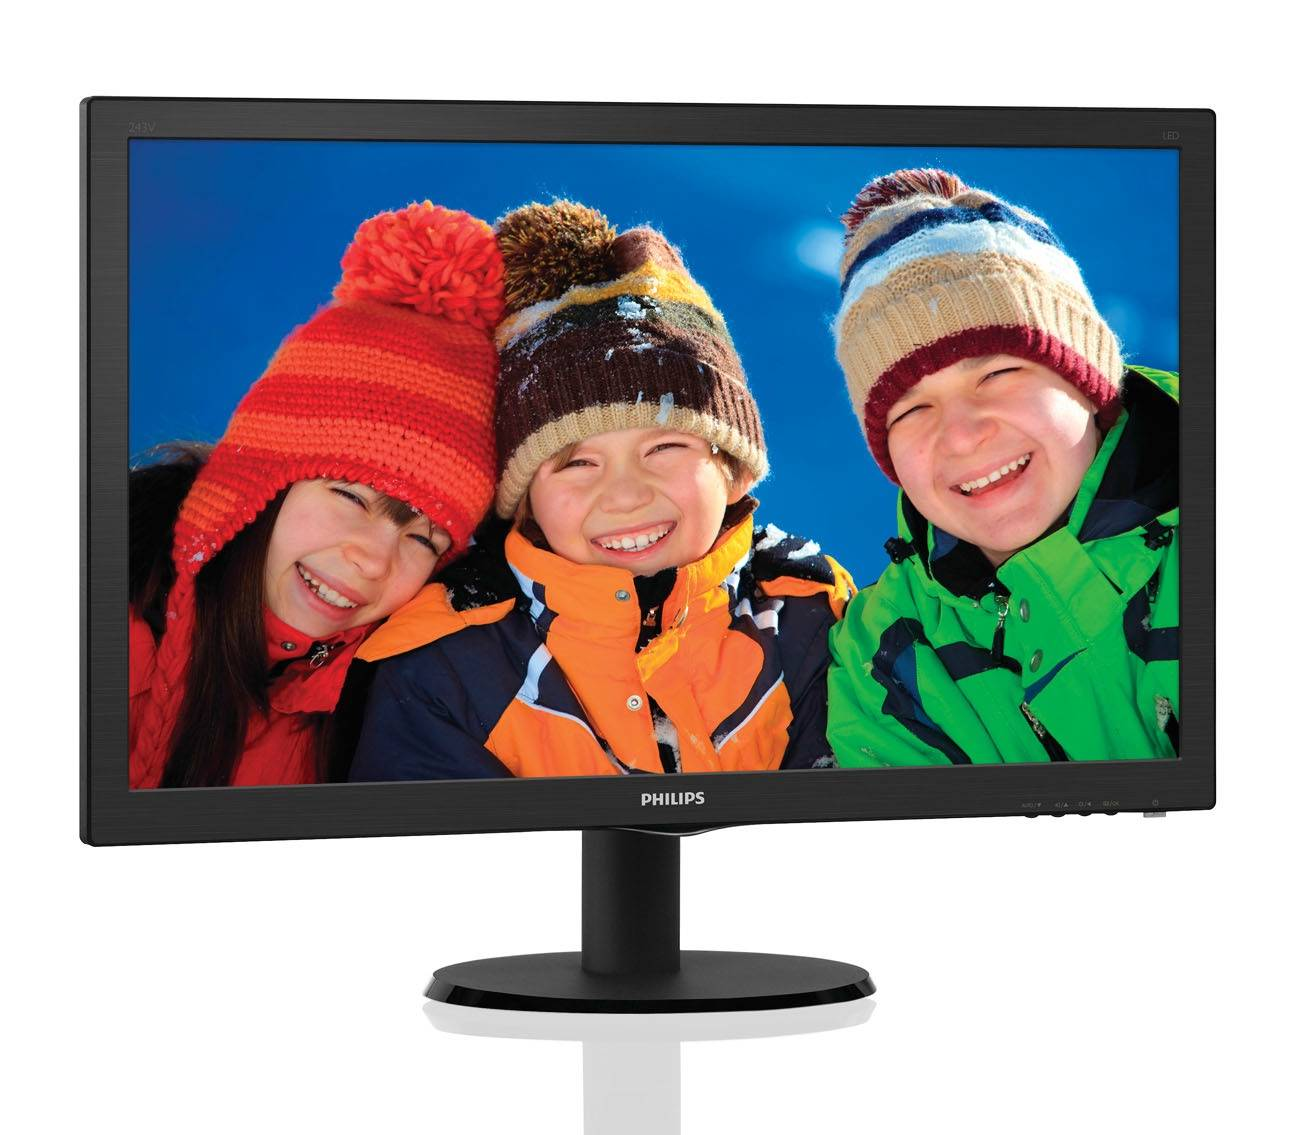 "МОНИТОР 23.6"" PHILIPS 243V5LHAB/00(01) Black (LED, 1920x1080, 1 ms, 170°/160°, 250 cd/m, 10M:1, +DVI, +HDMI, +MM)"